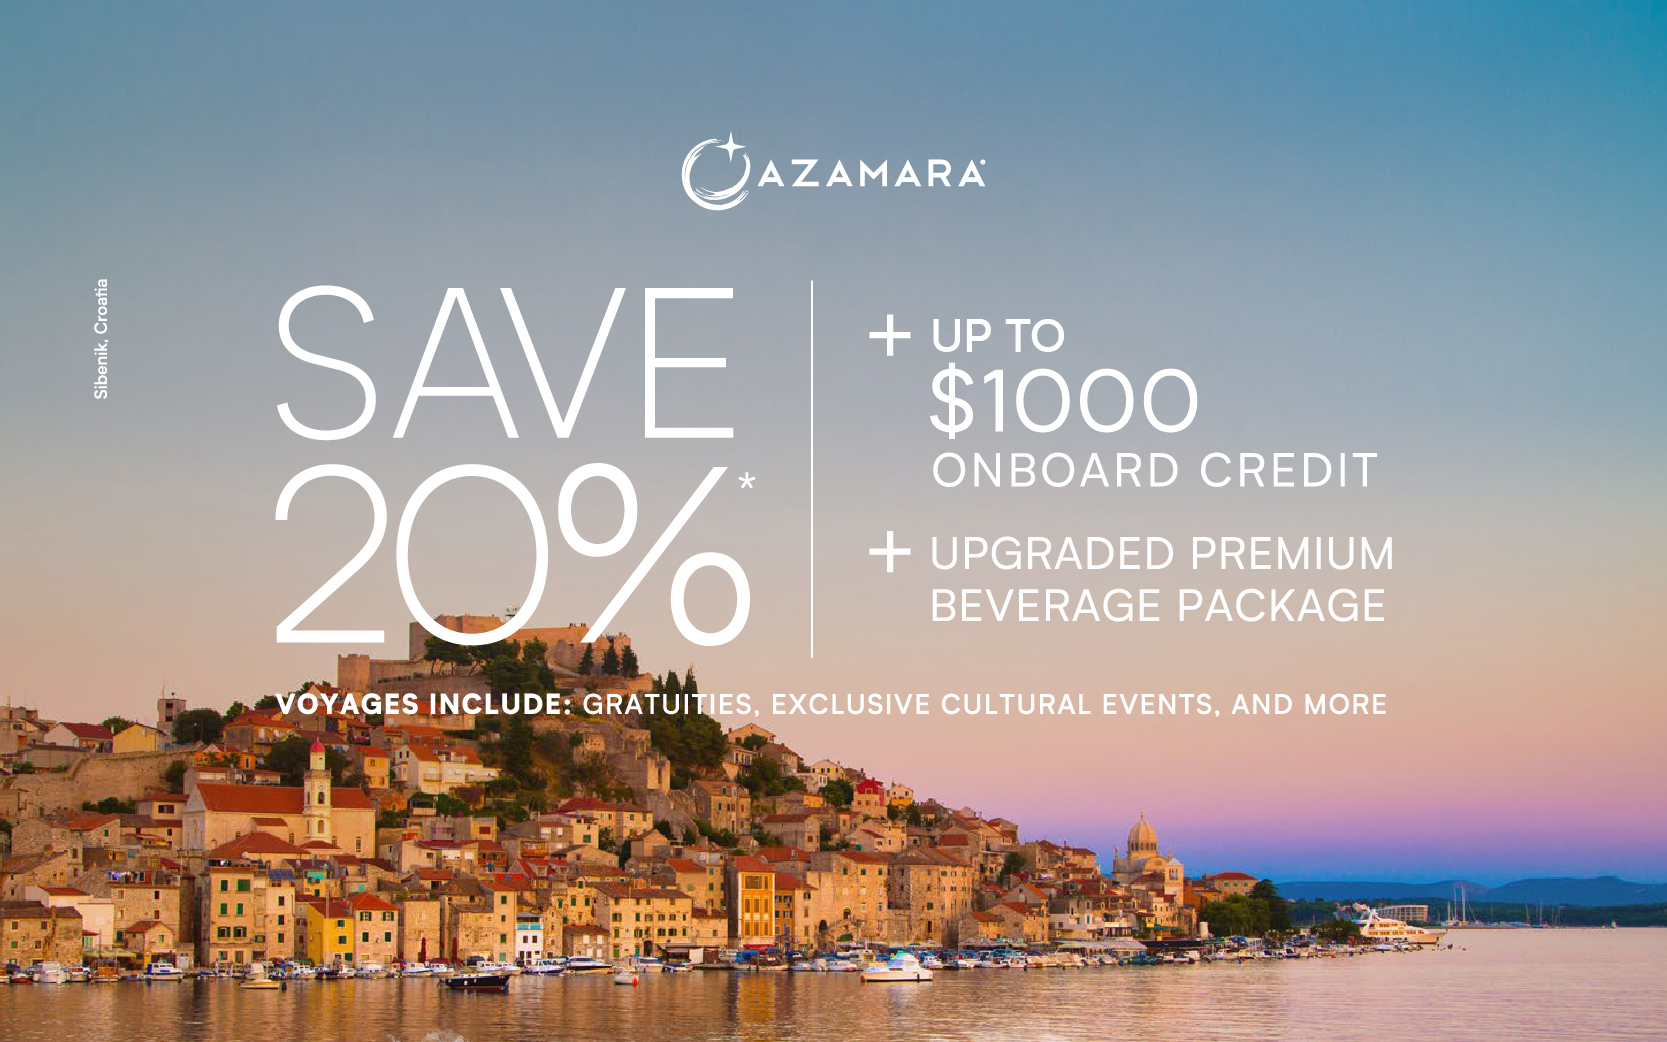 Sail with Azamara and save 20% off, plus up to $1,000 On Board Credit, plus upgraded Premium Beverage Package, and more!